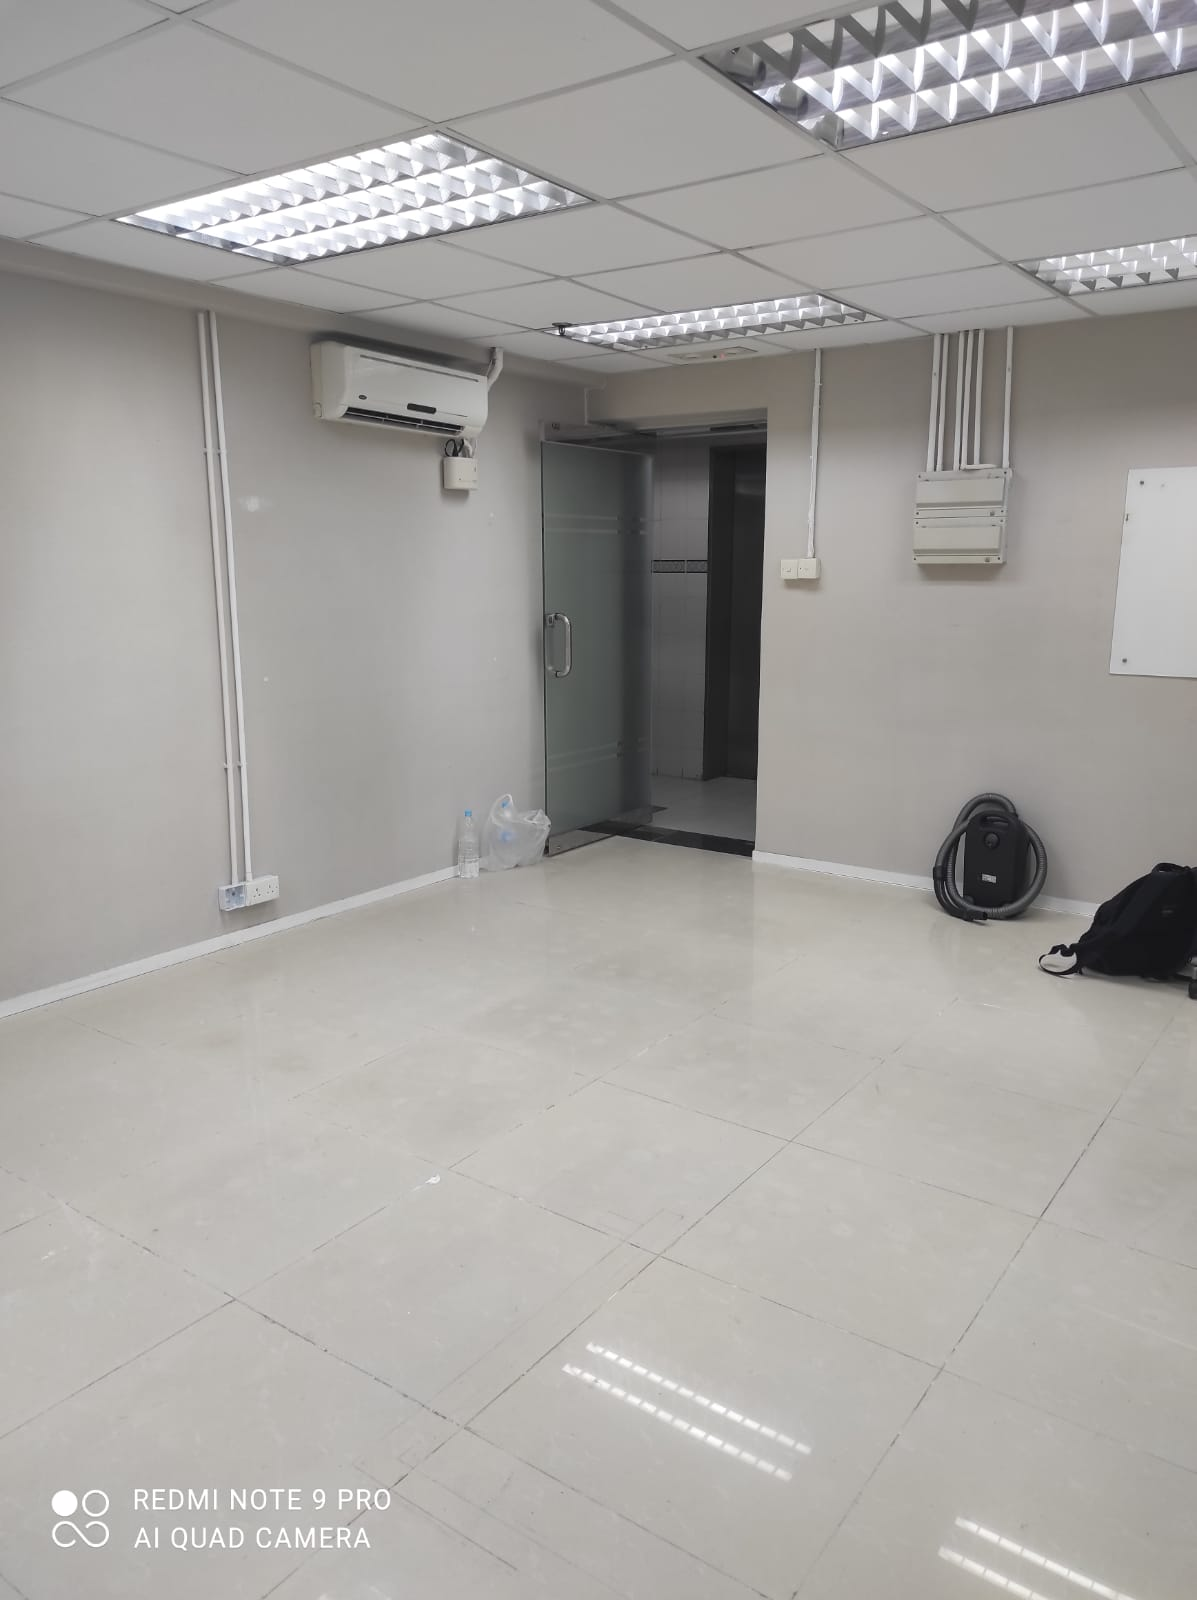 [Wanchai] [Shinyam Commercial Building] Mid Floor Office near MTR, newly renovated, rates & mang.fee included